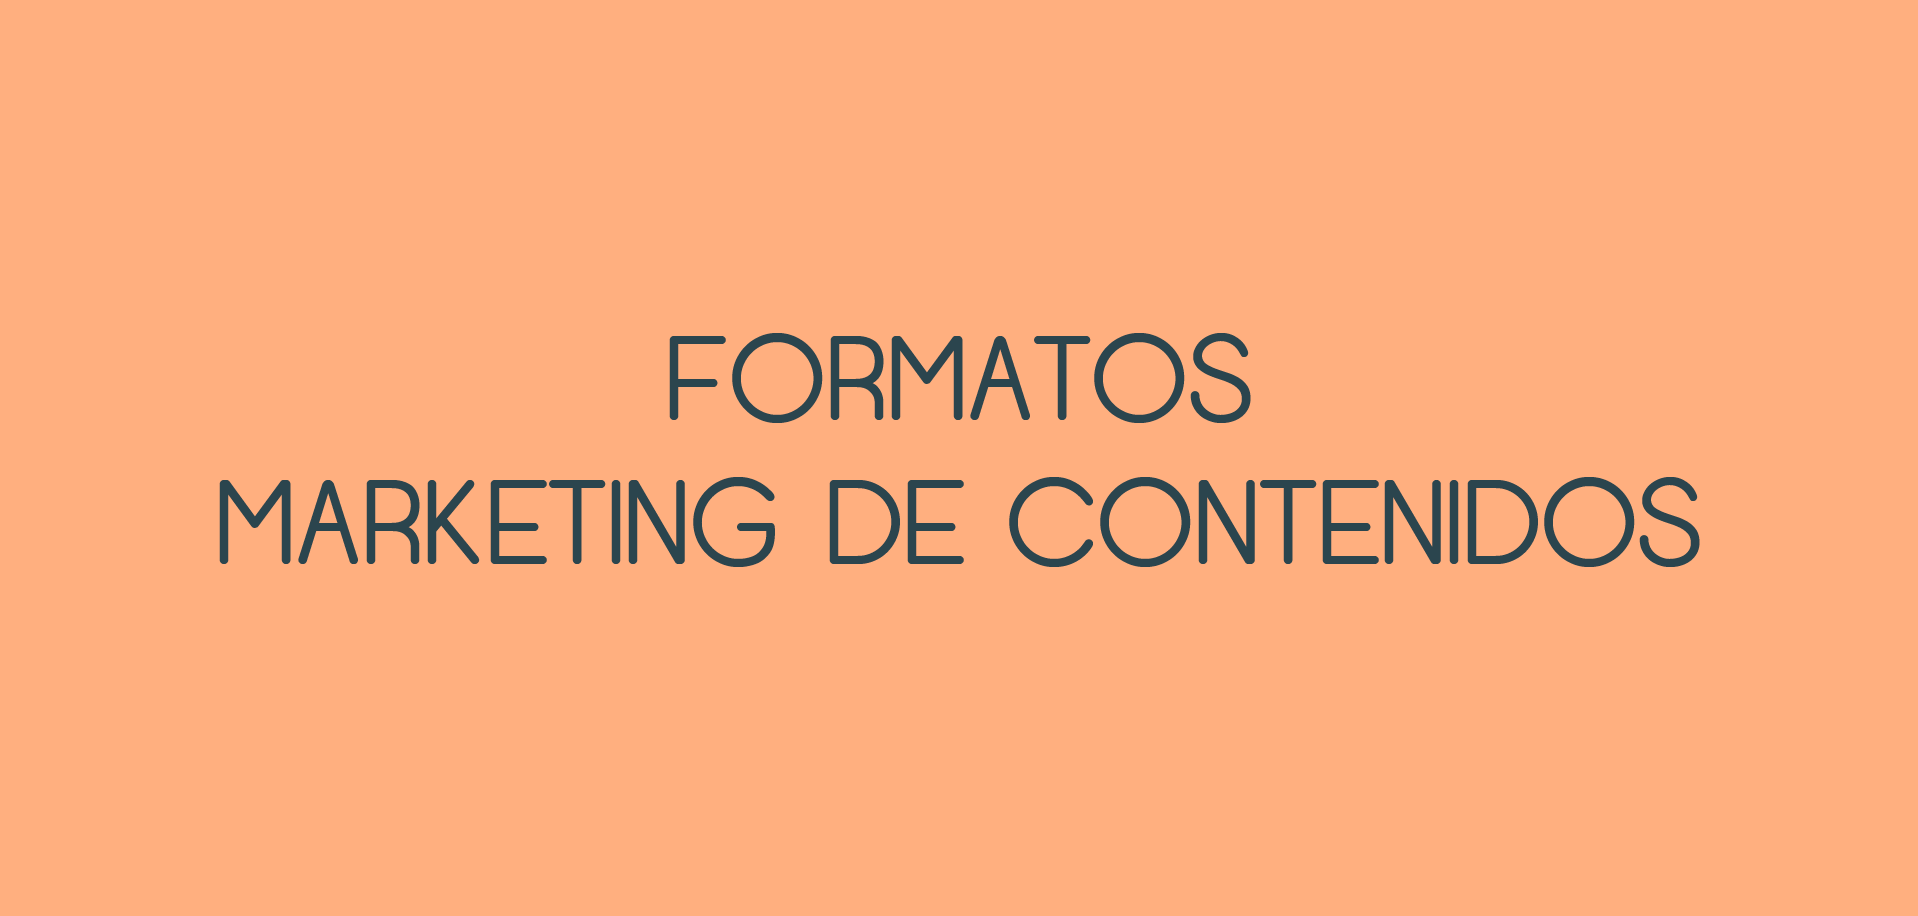 Formatos de marketing de contenidos, tendencias marketing online 2017